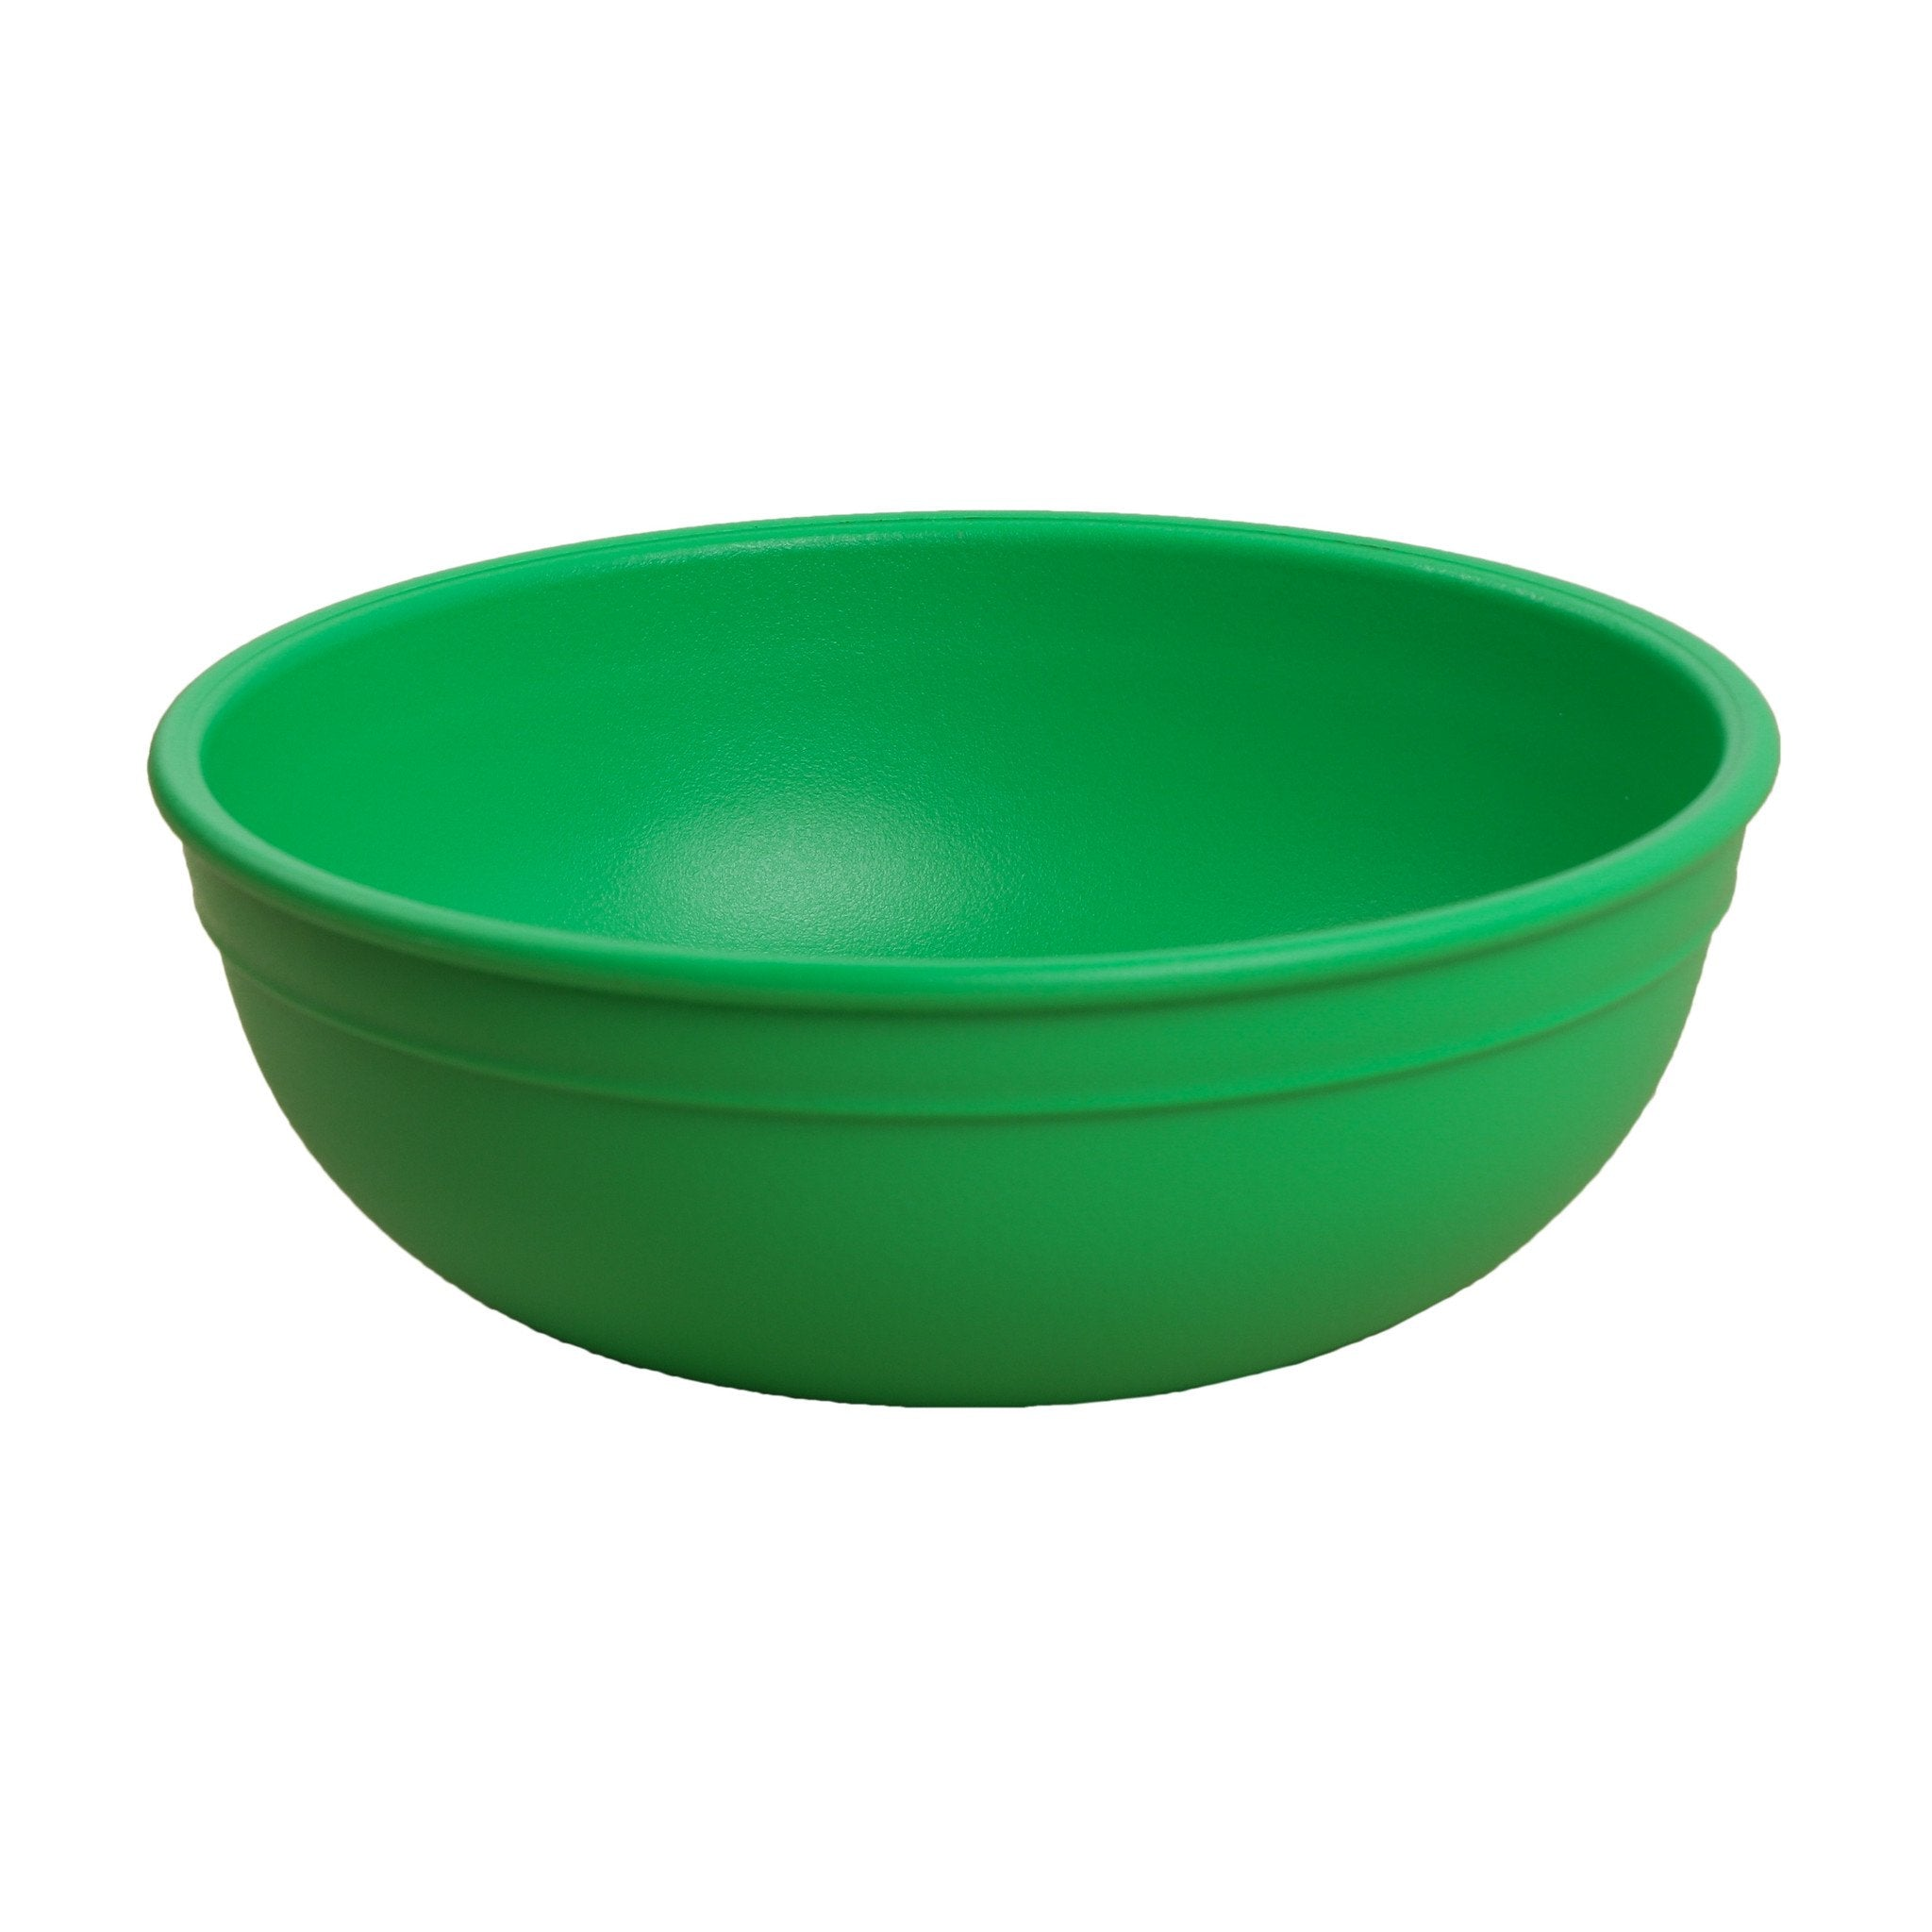 Replay Large Bowl Replay Dinnerware Kelly Green at Little Earth Nest Eco Shop